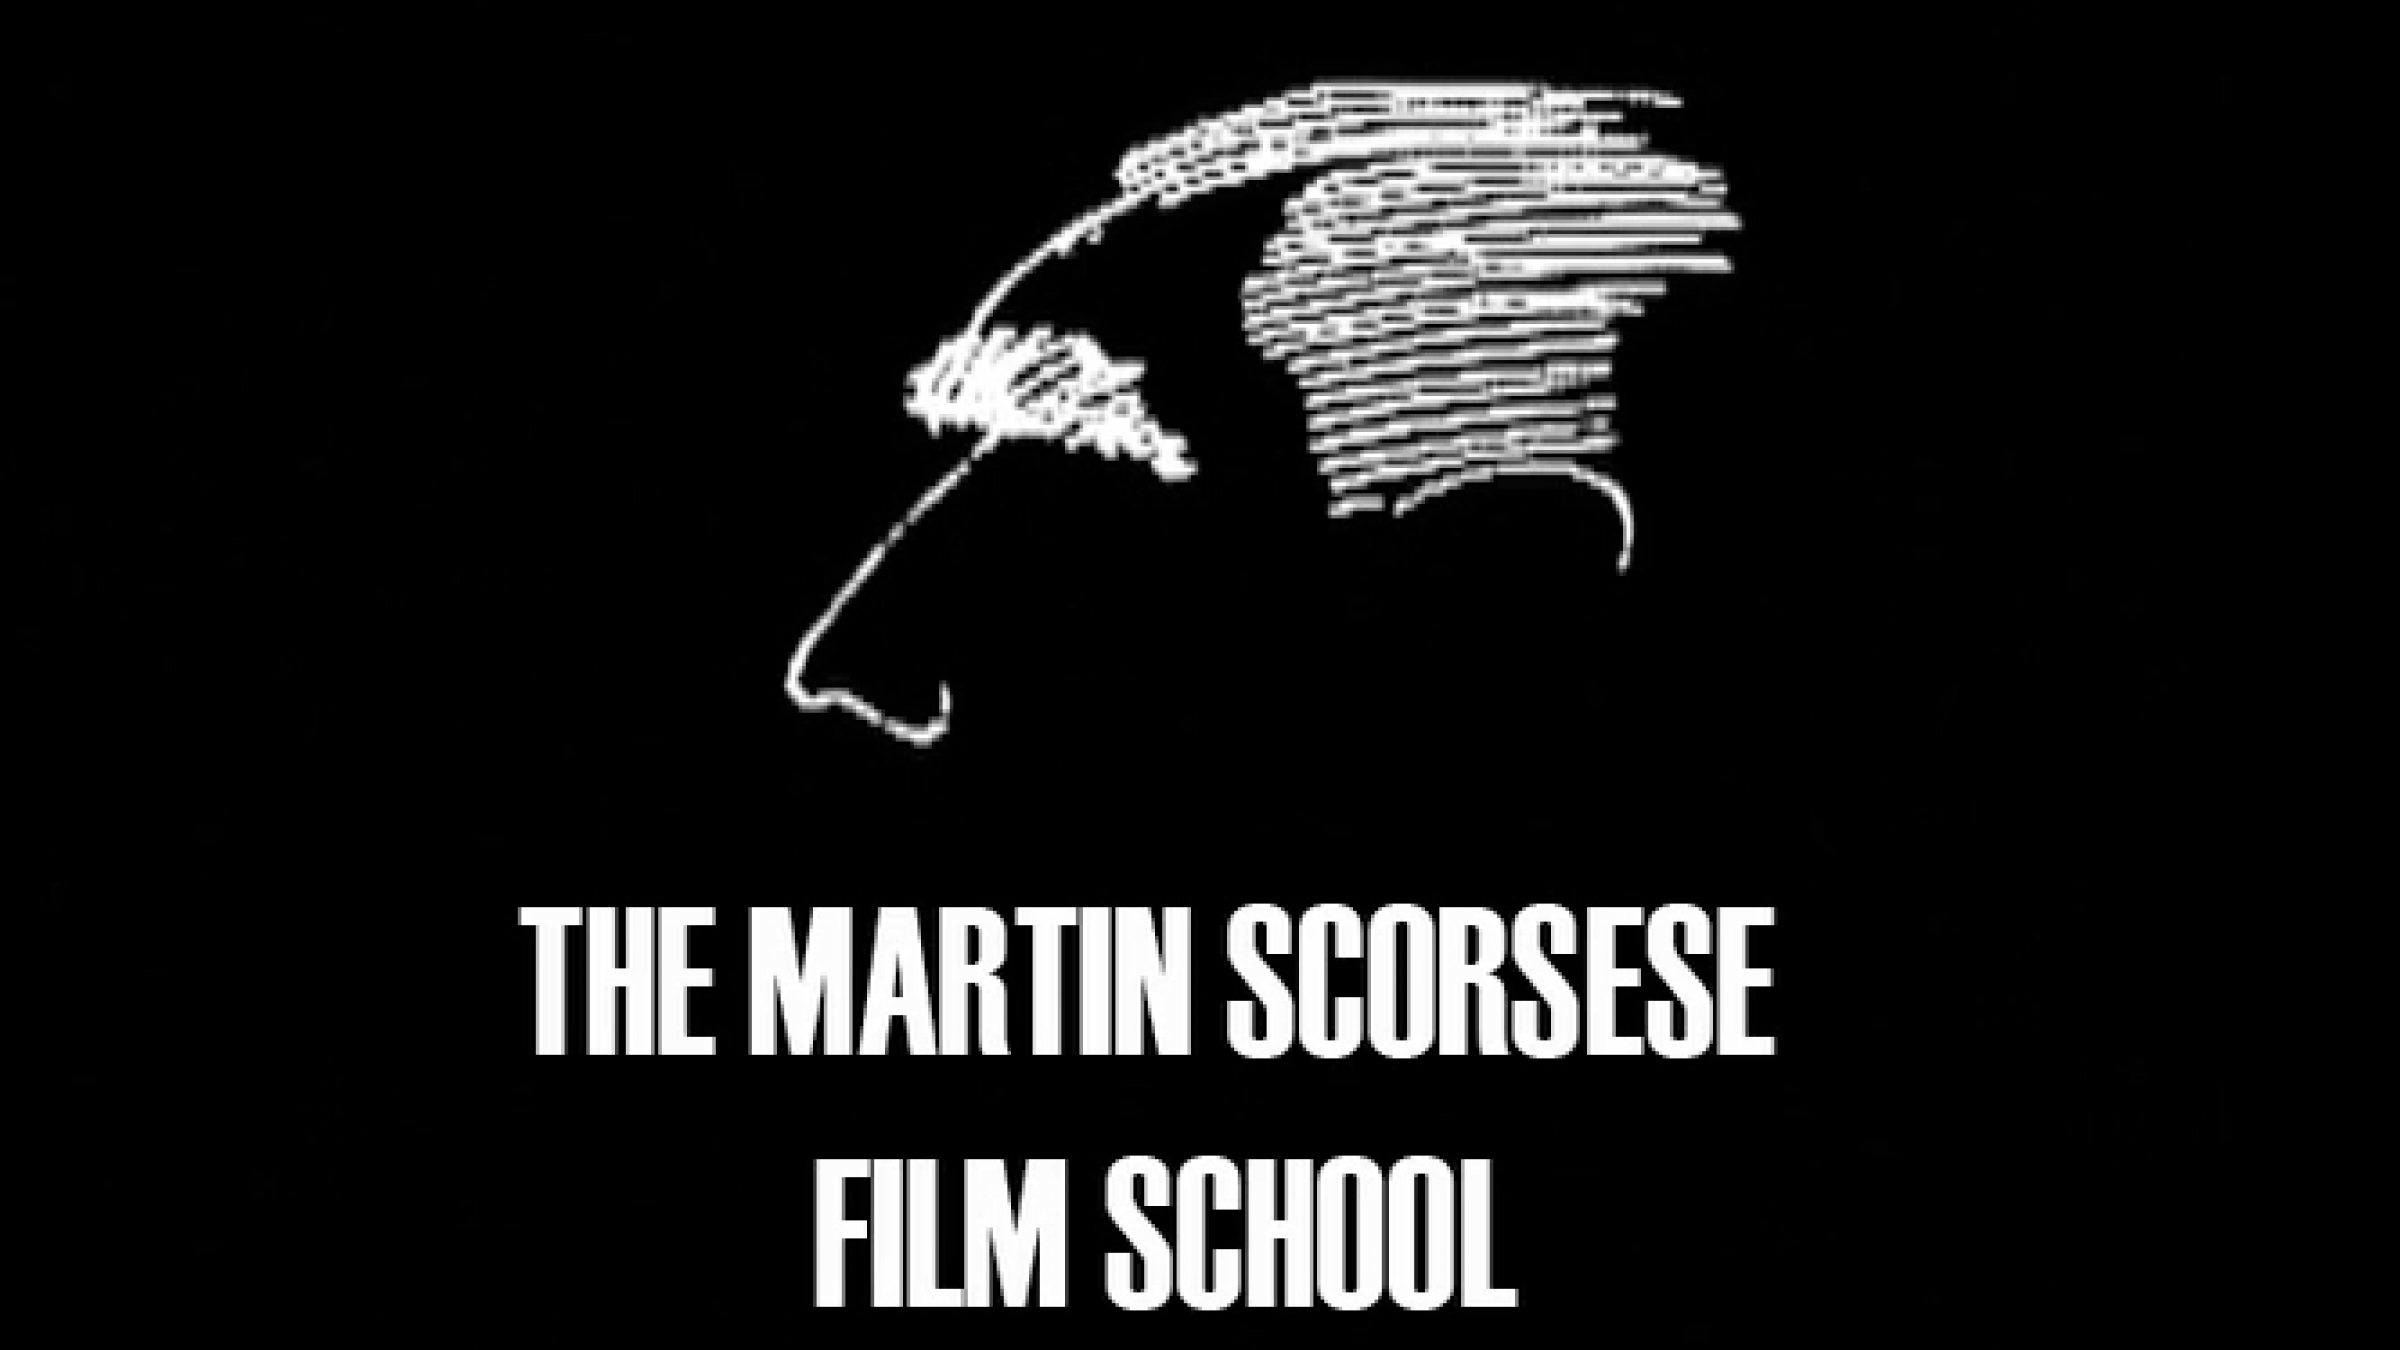 Watch 'The Martin Scorsese Film School' & Explore the History of Cinema with a Master